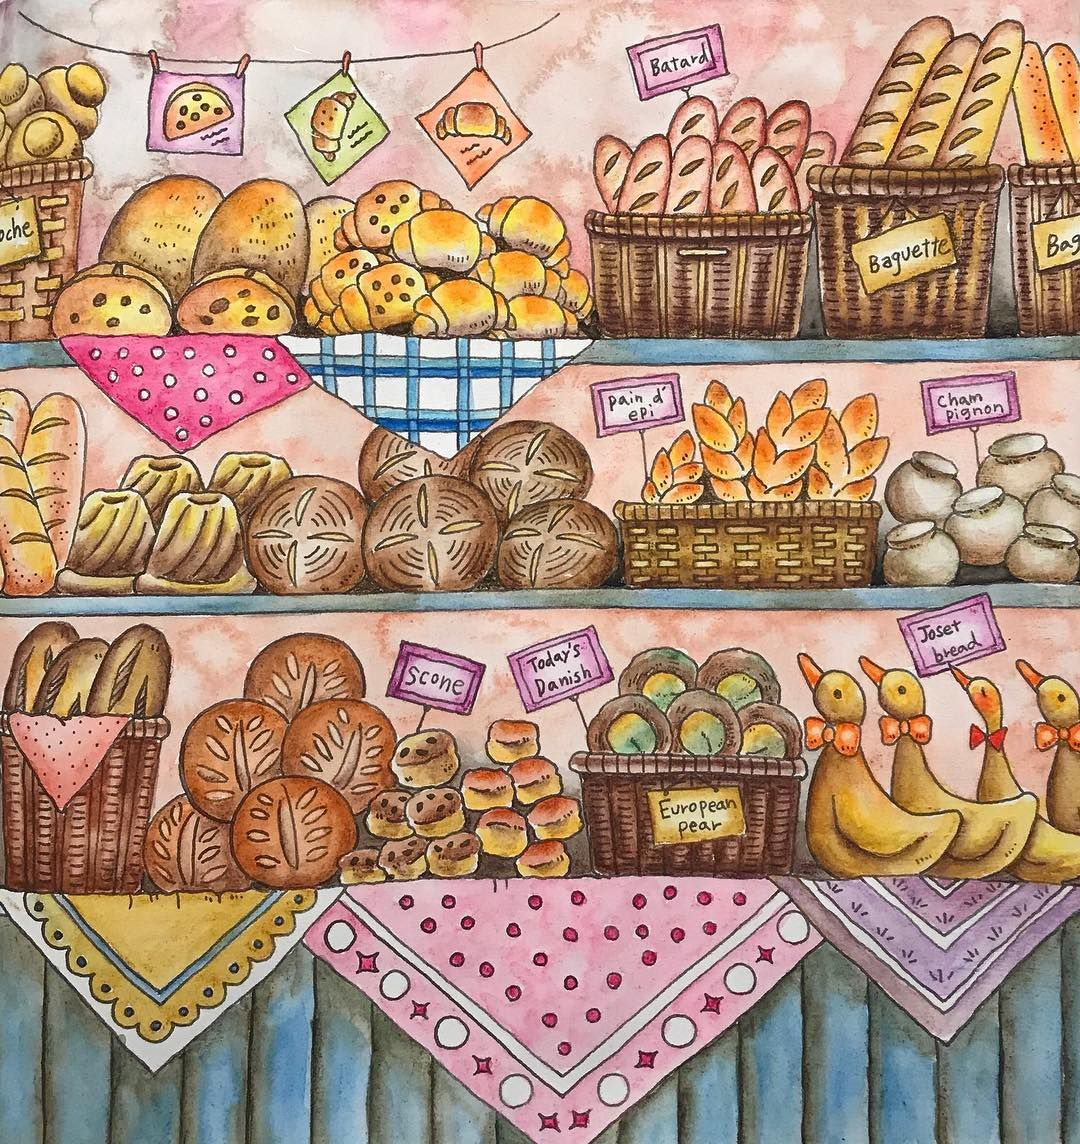 From Romantic Country A Fantasy Colouring Book By Eriy Pauline S Bakery ロマンチックカントリー 美しい城が佇む国 Used Coloring Book Art Coloring Books Romantic Country